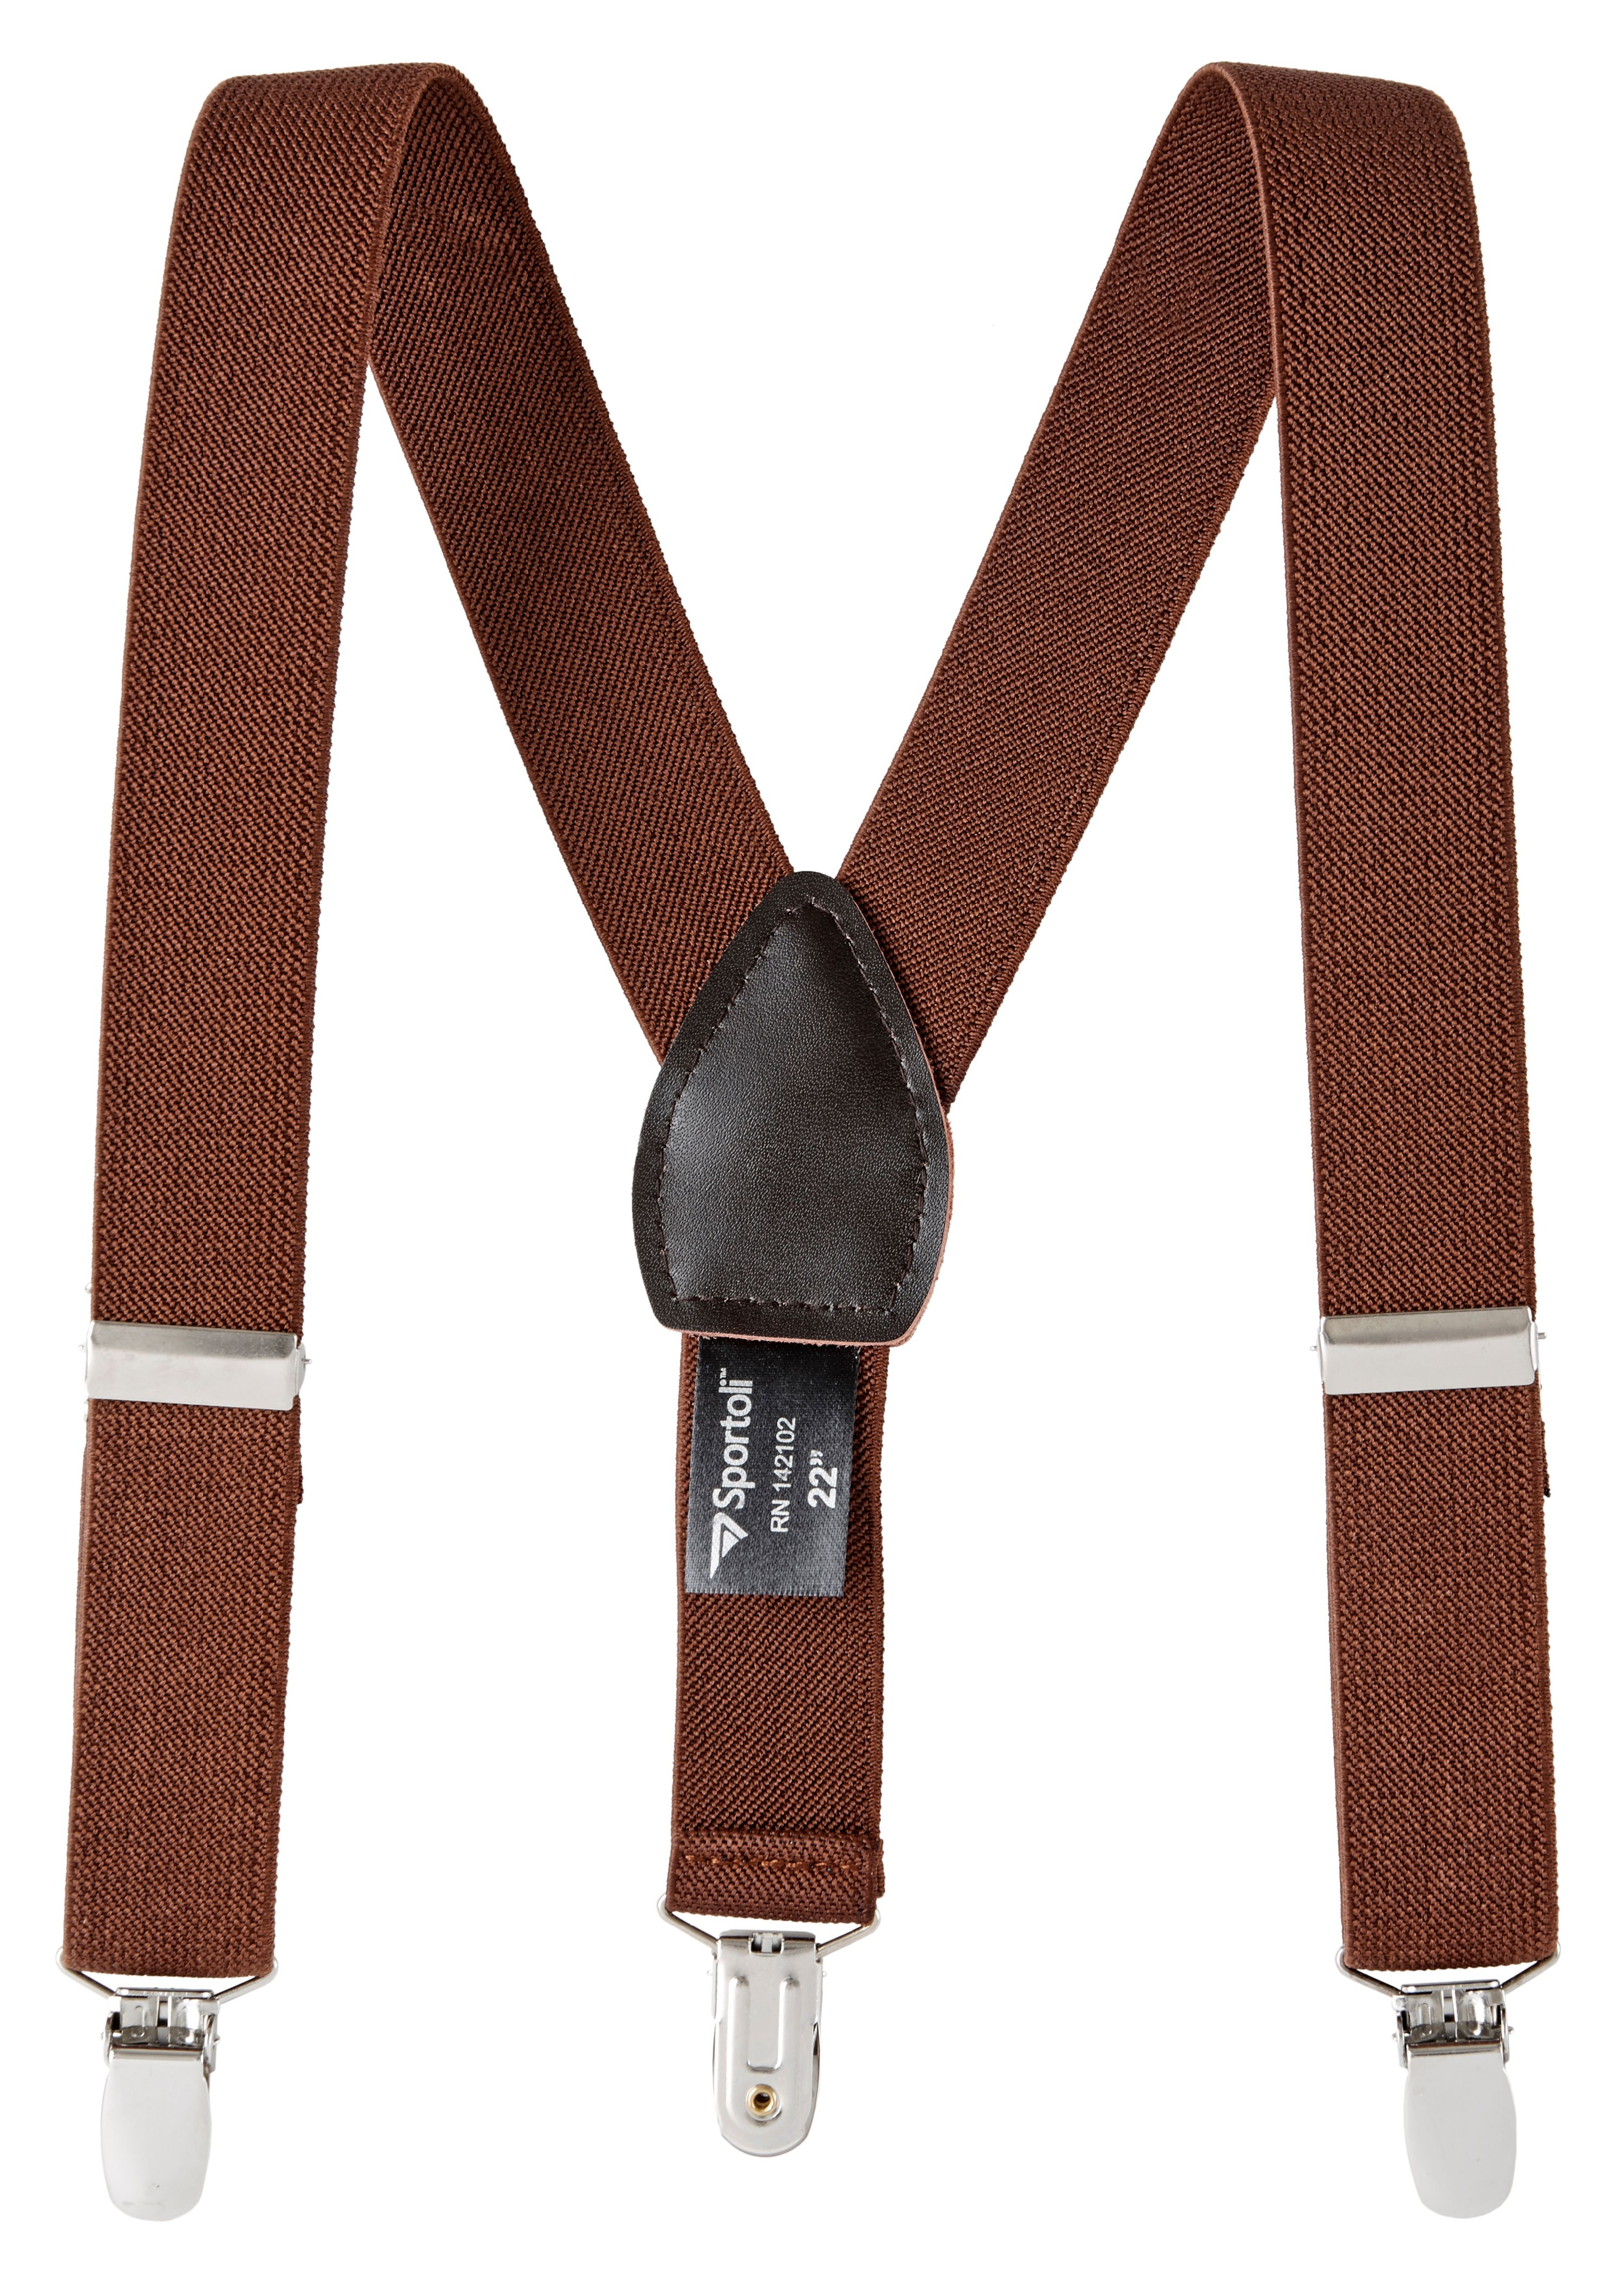 Sportoli Boys' and Girls' Kids Toddlers and Baby Adjustable Elastic Solid Color and Striped Fashion Suspenders for Wedding and Ring Bearer Outfits, Features Leather Crosspatch and Super Quality Clips